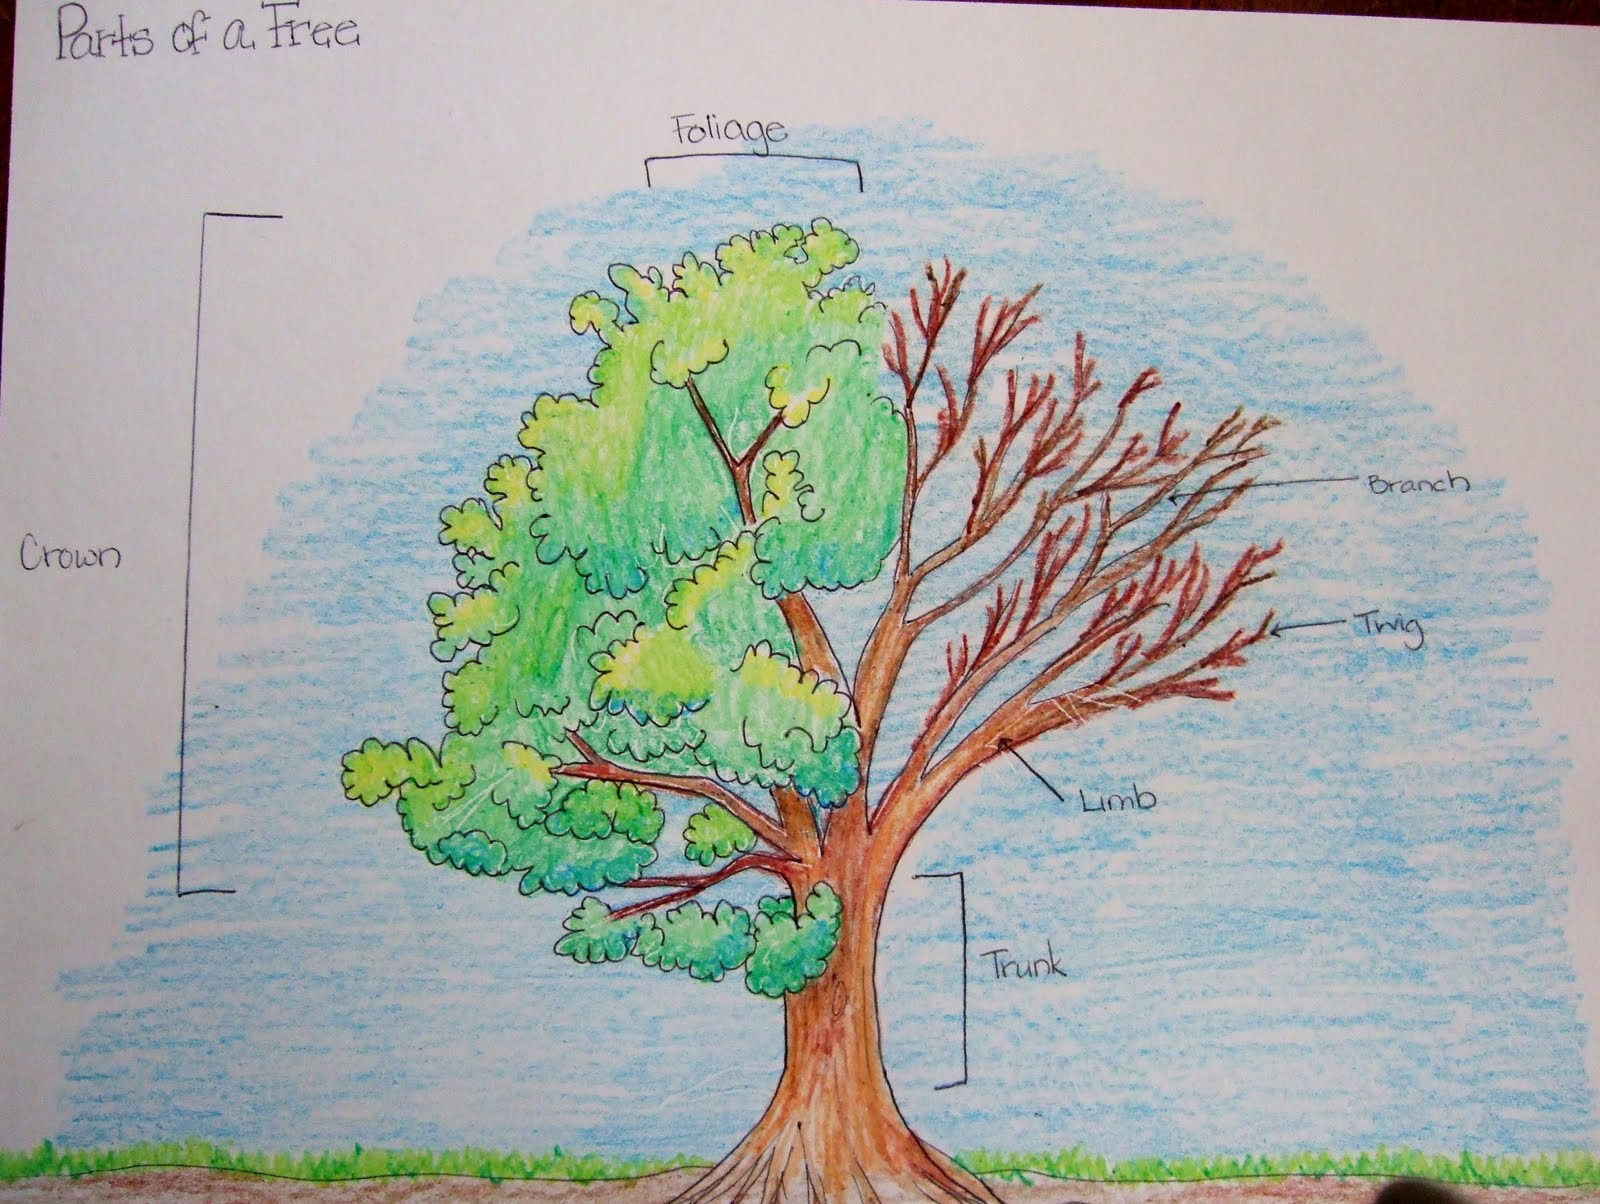 Drawn poster science Parts Of Science The Tree;